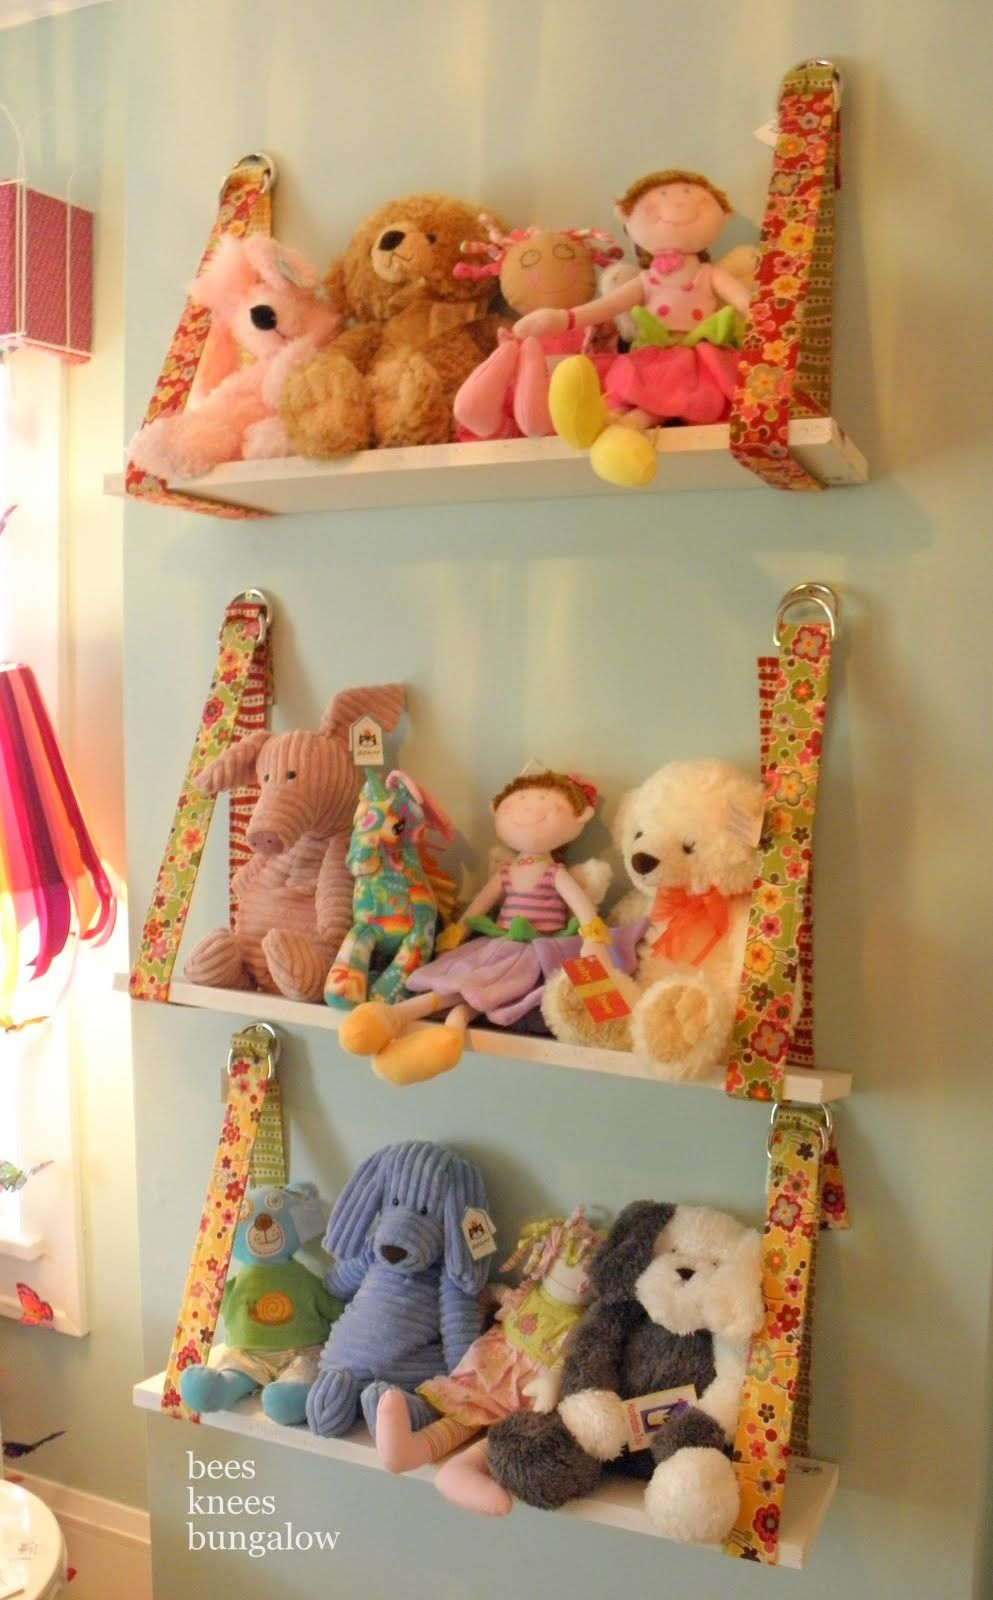 Hanging Playroom Shelves - Could Also Be Used For Regular